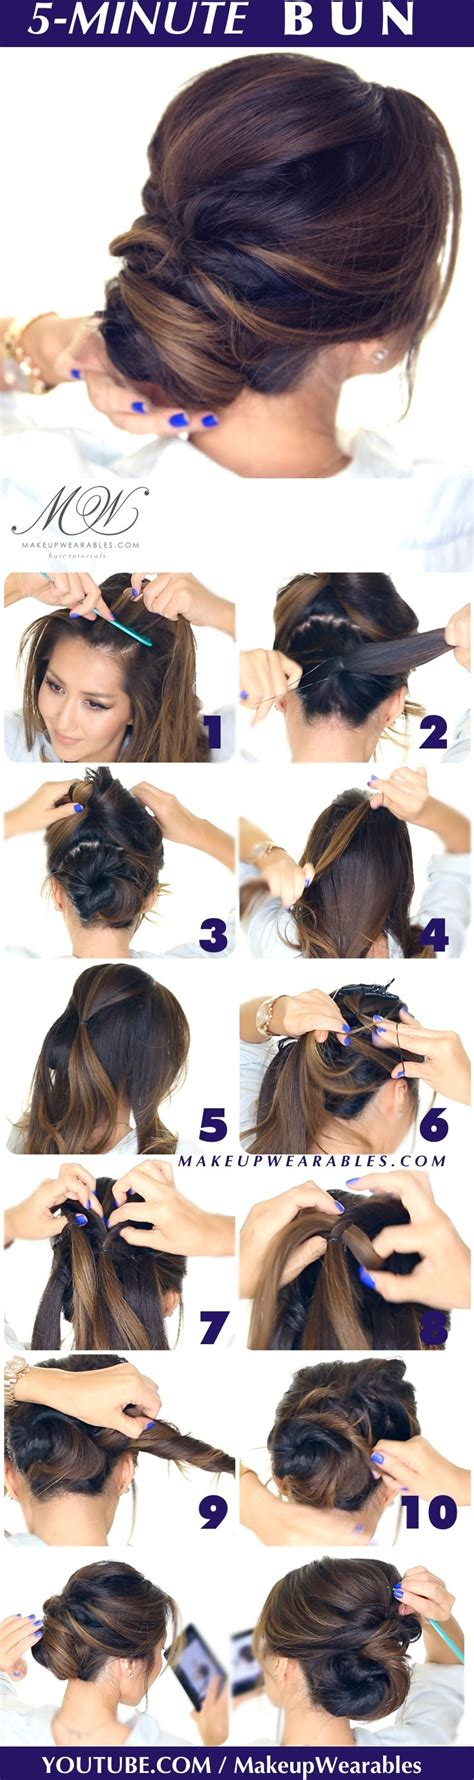 black updo hairstyles step by step instructions 10 chignons magnifiques 224 faire chez soi coiffure simple